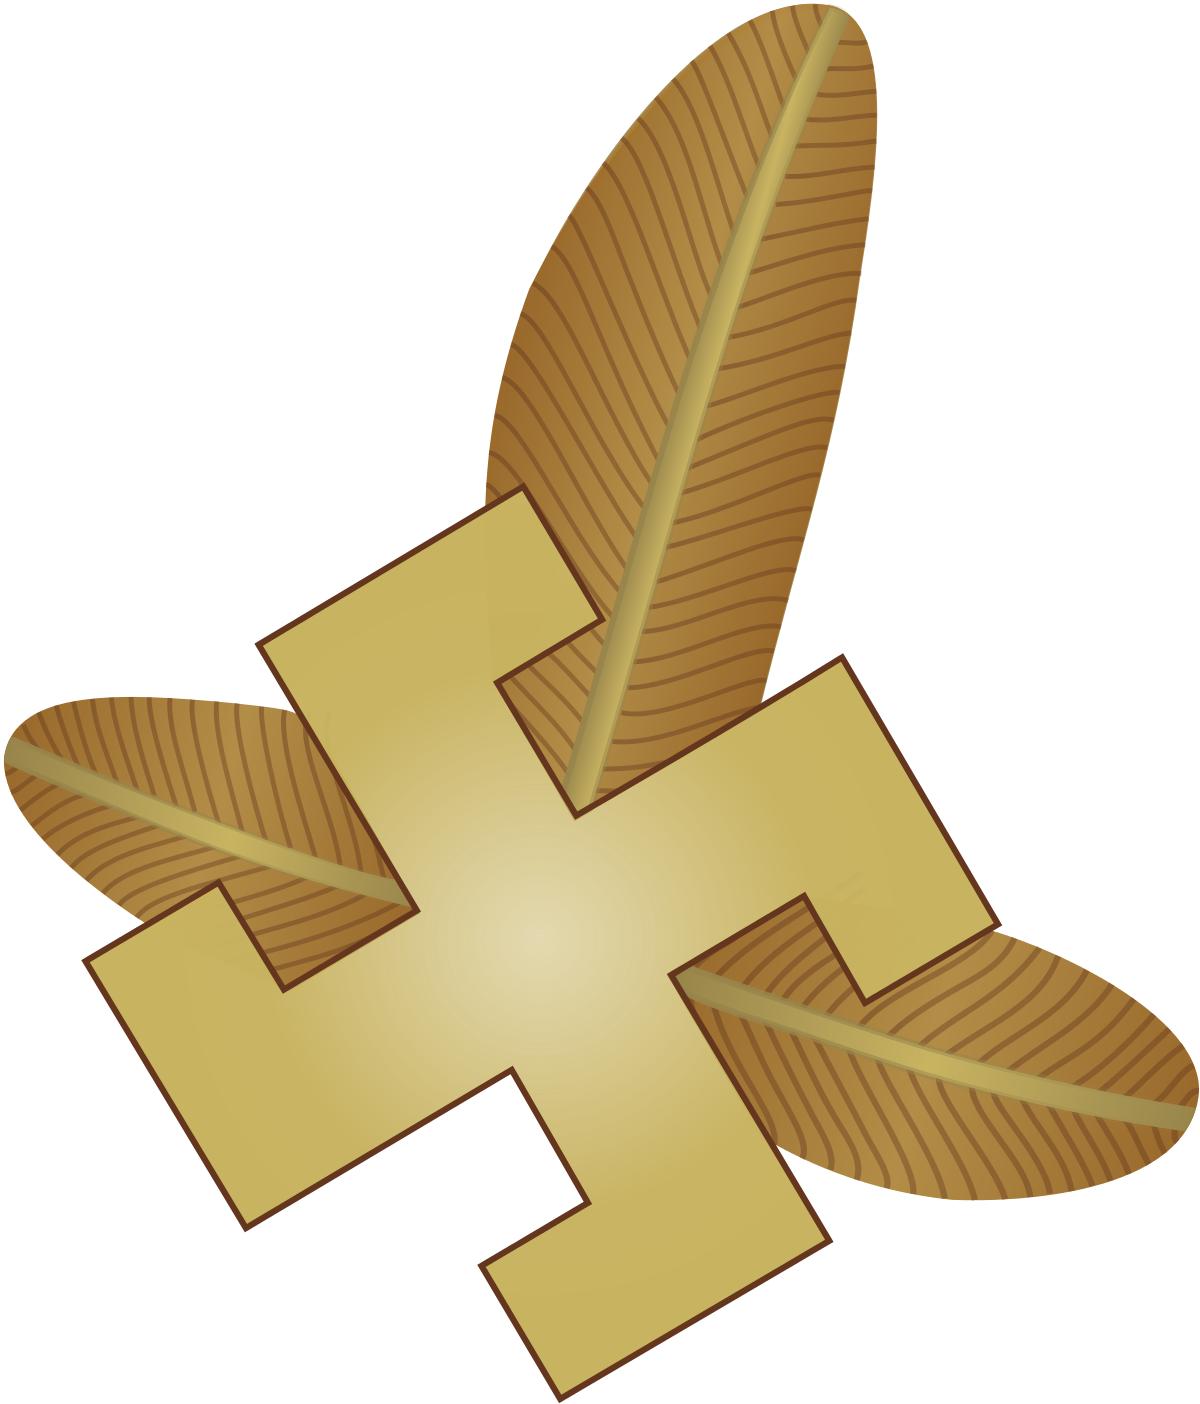 Cross rifles clipart svg freeuse 21st Mountain Infantry Division (Poland) - Wikipedia svg freeuse